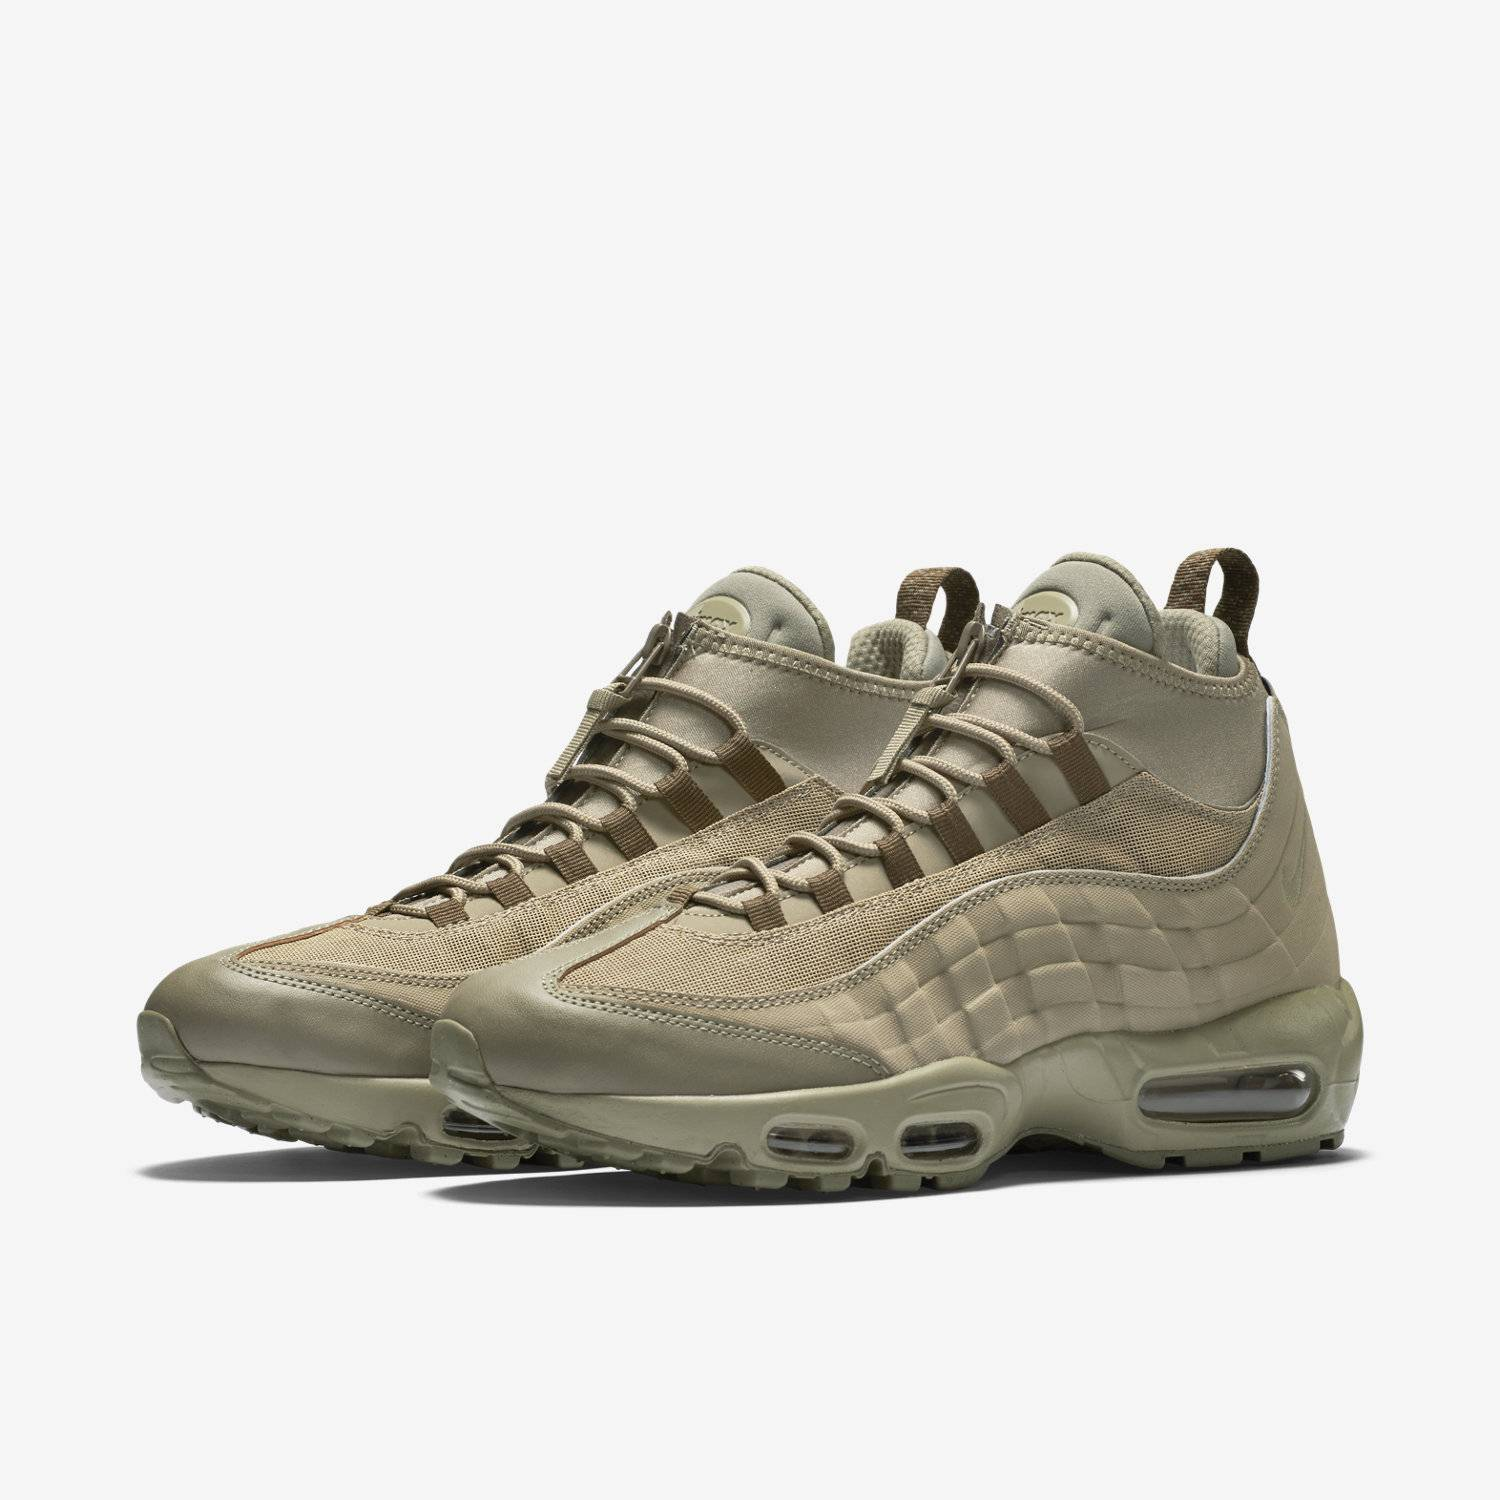 reputable site 3704f fd06a ... spain air max 95 sneakerboot black nike 806809 002 goat 26644 38496